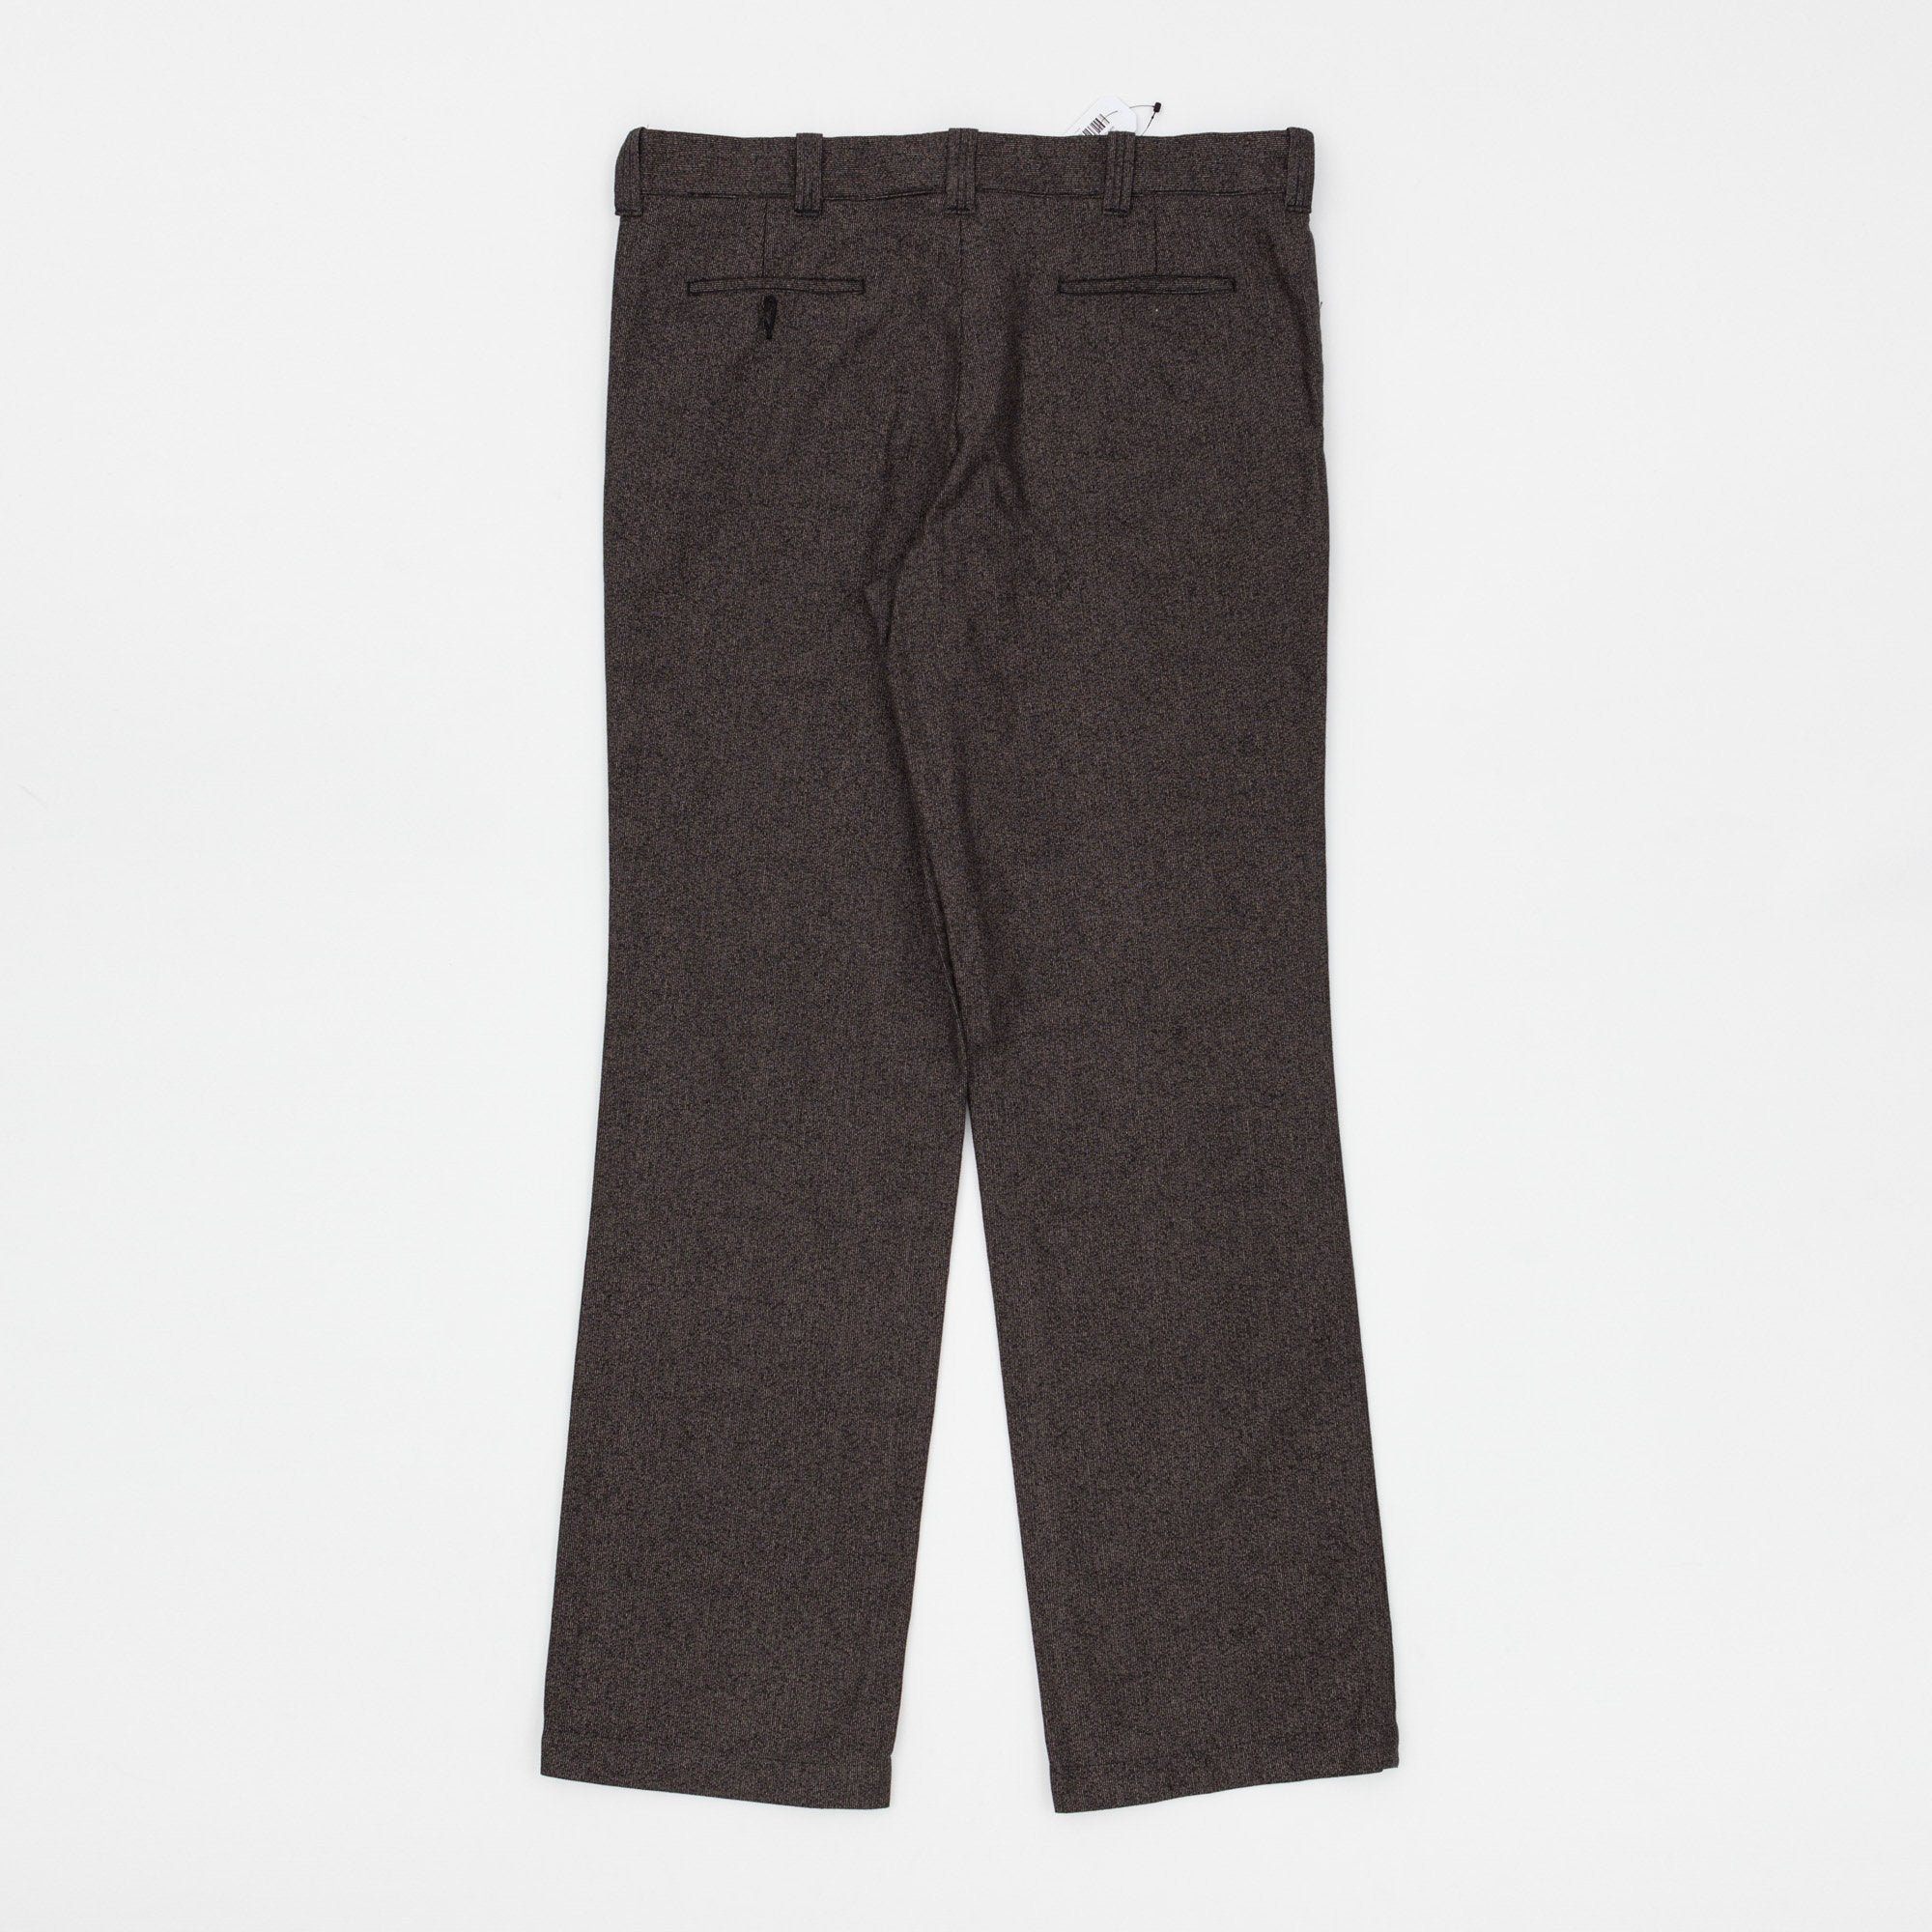 The Real McCoy's Double Diamond Work Trousers